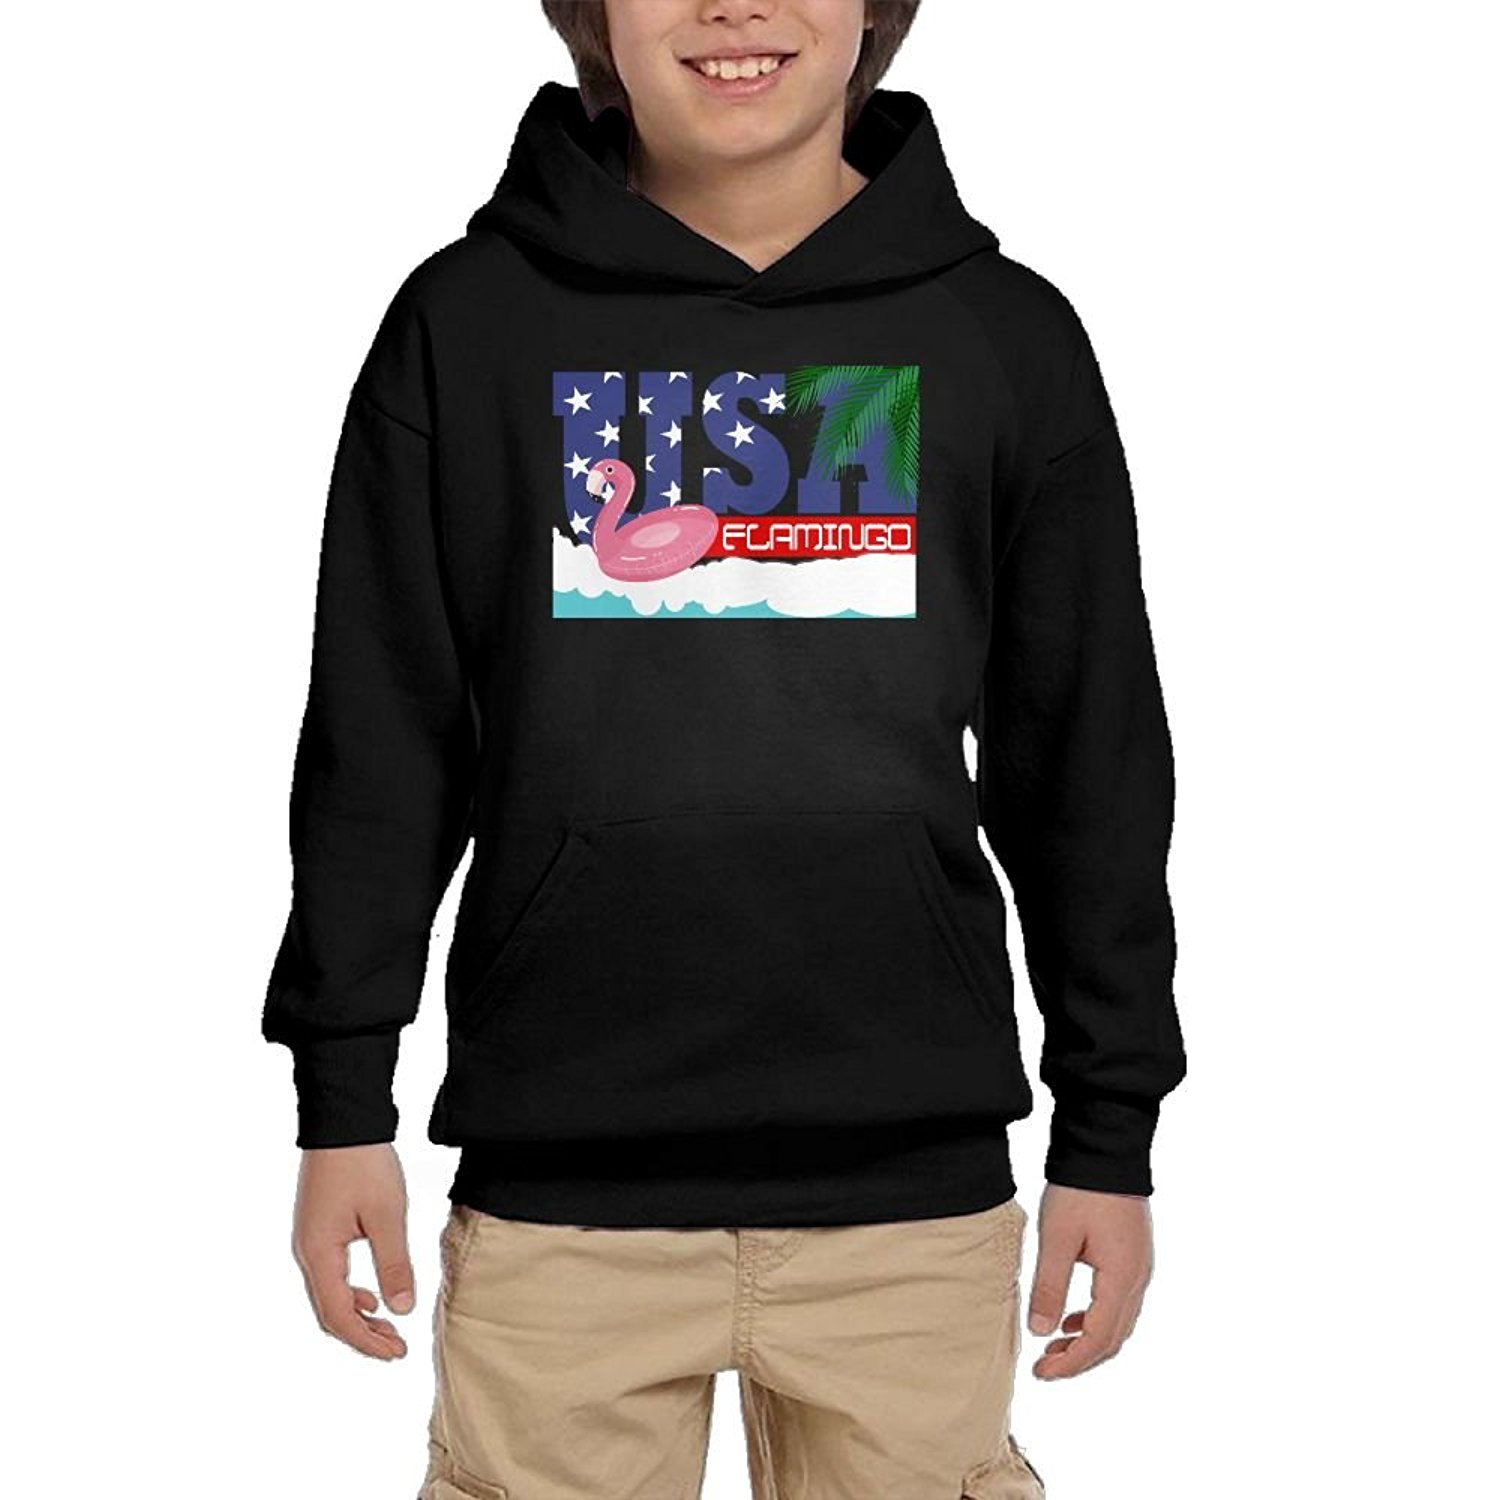 HUH HOODIES Frenchie Flamingo Pool Float Cartoon Youth Athletic Pullover Hoodies Casual Sweatshirts With Pocket